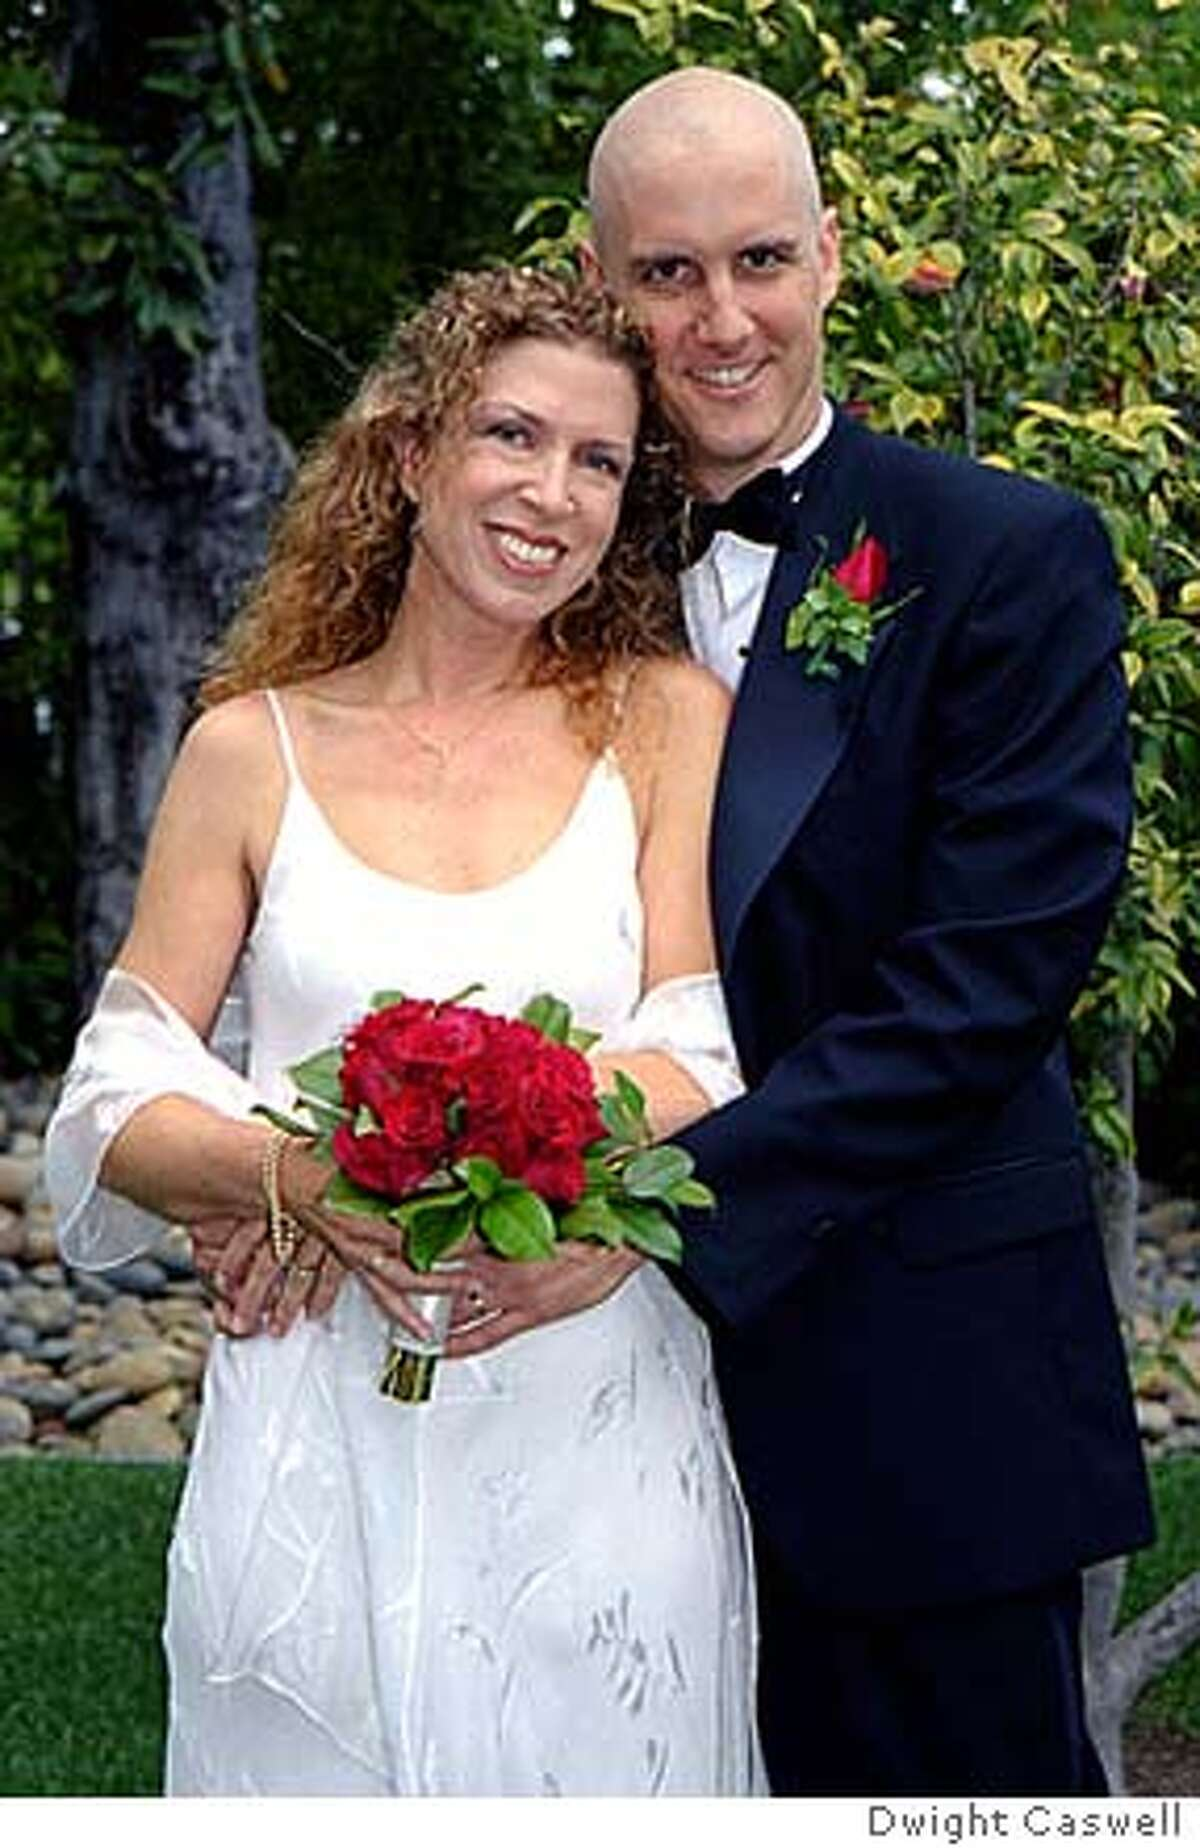 � 20030427_wedding.jpg : Mike Wooldridge and Linda Wooldridge at their wedding in Sonoma, California, in April 2003. This was during Mike�s chemotherapy. Picture taken by Dwight Caswell.